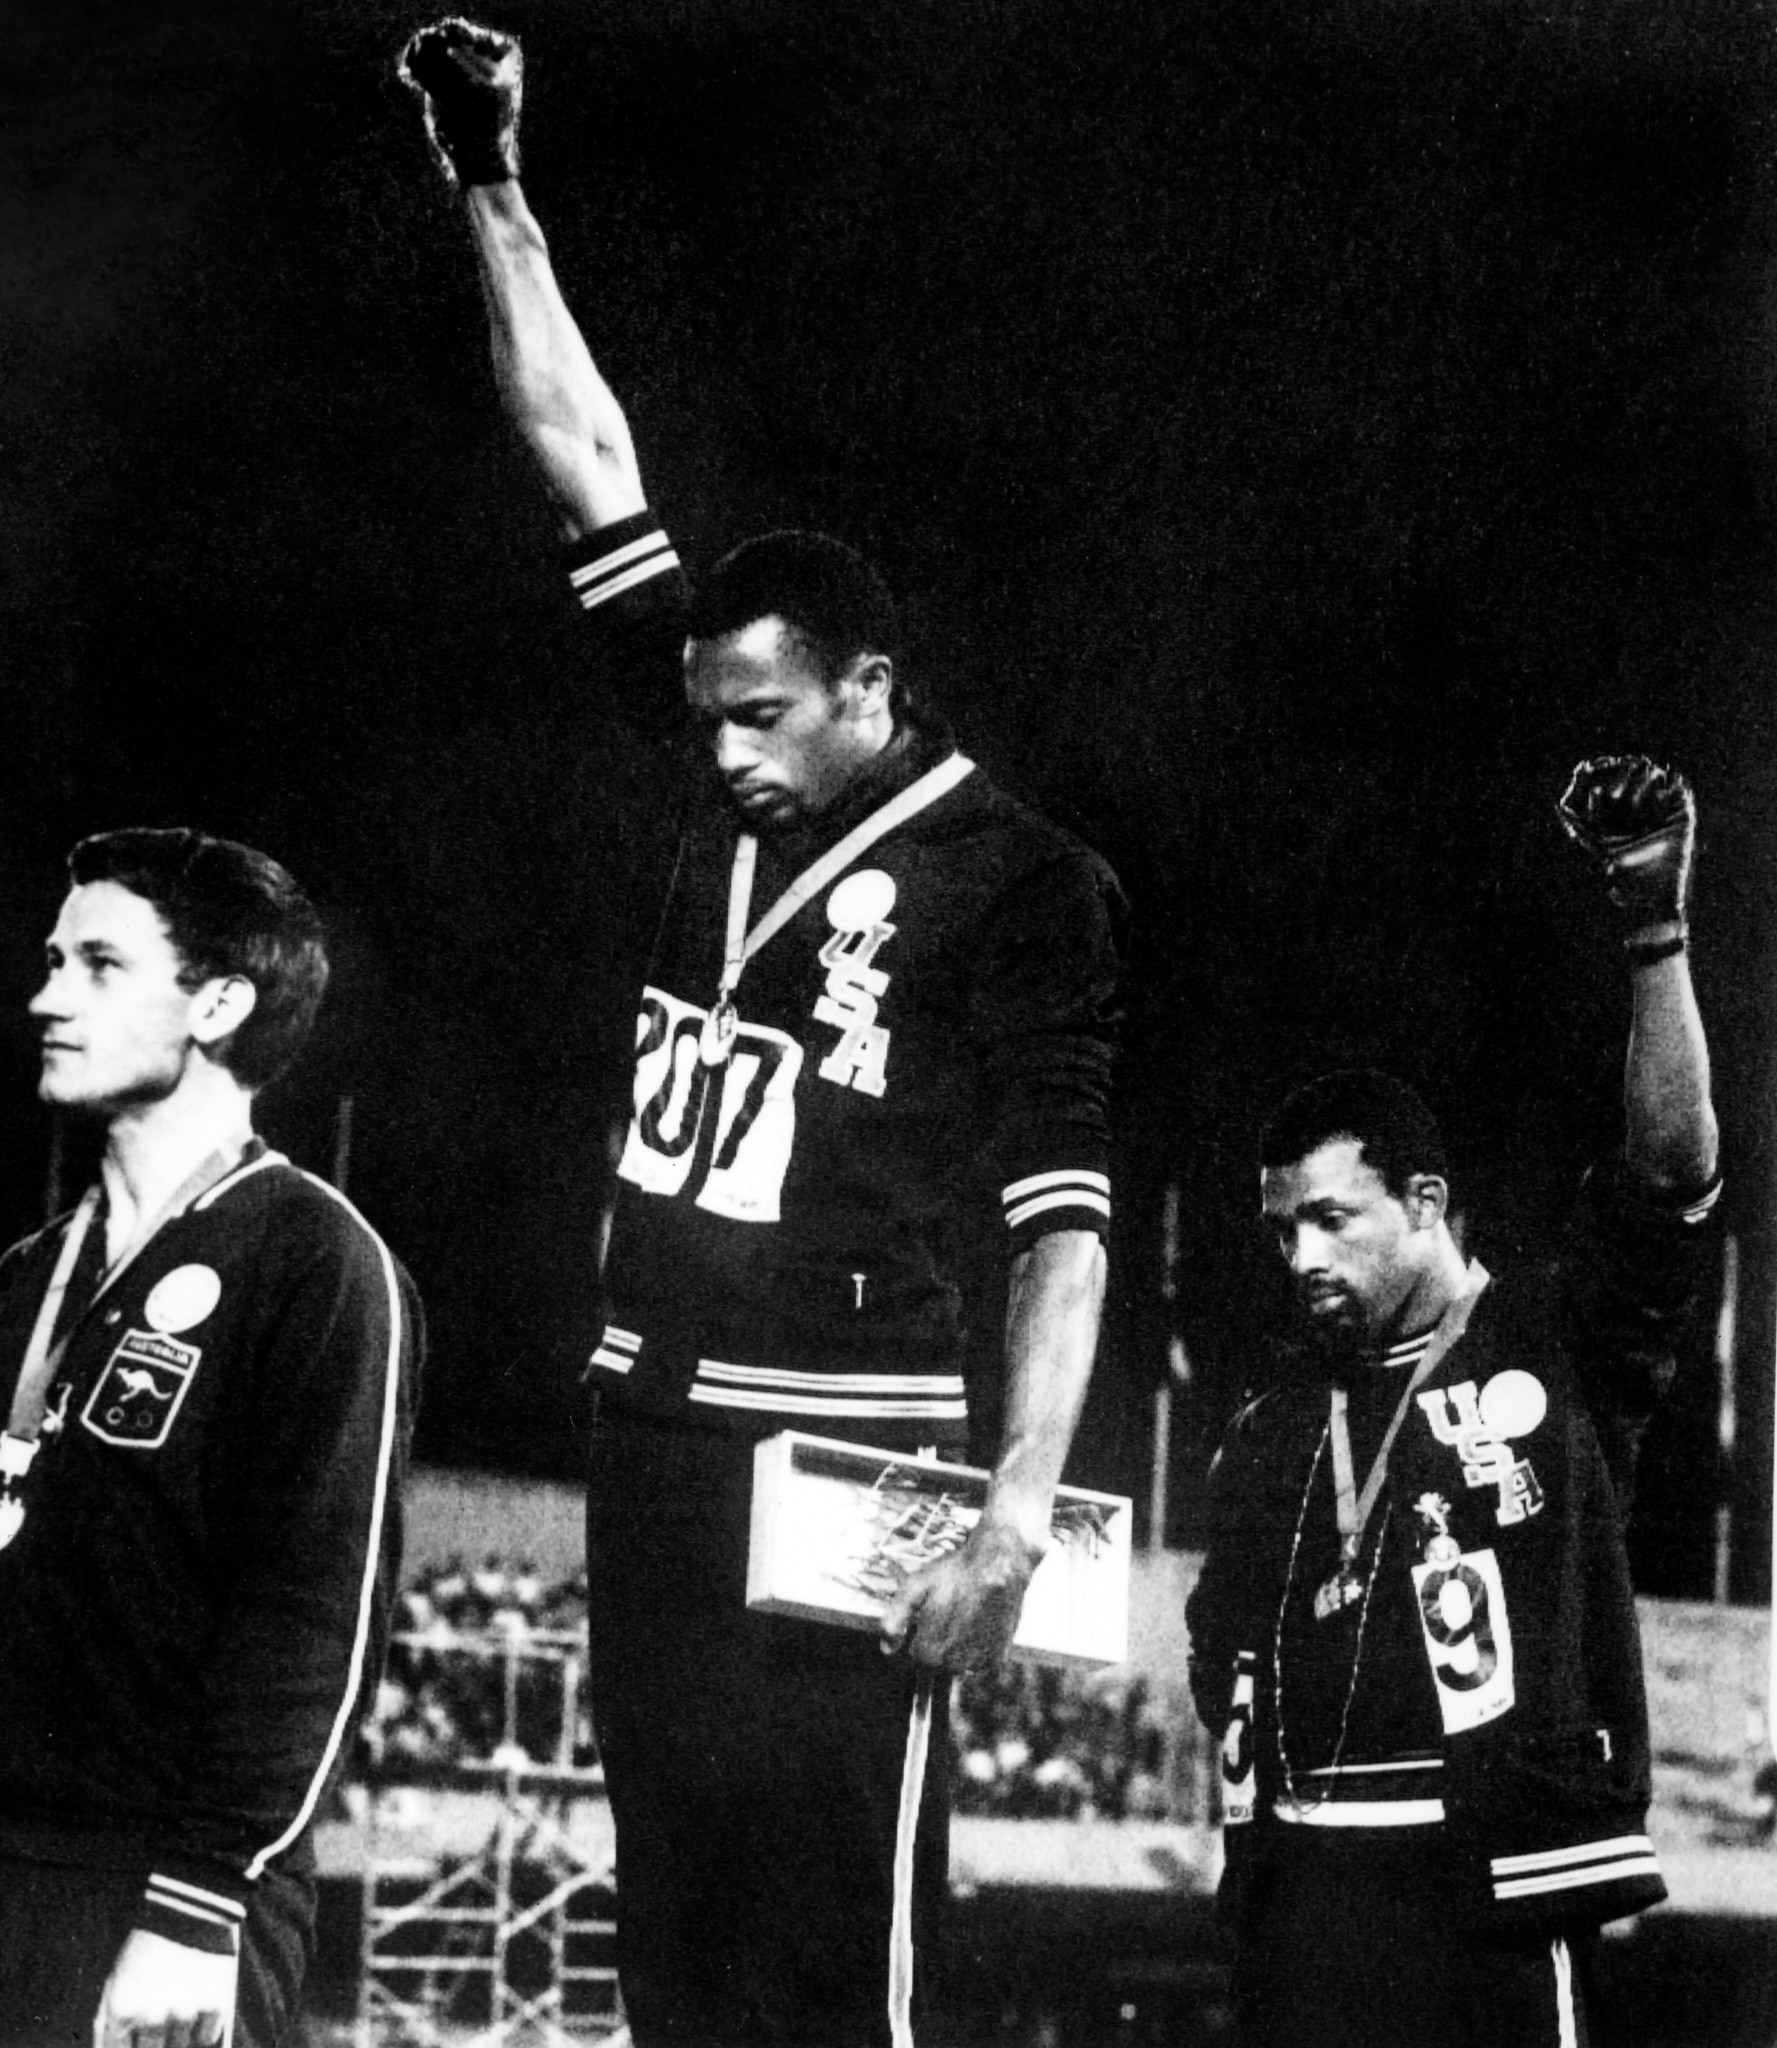 USOPC Athletes' Advisory Council and John Carlos call for abolition of Rule 50